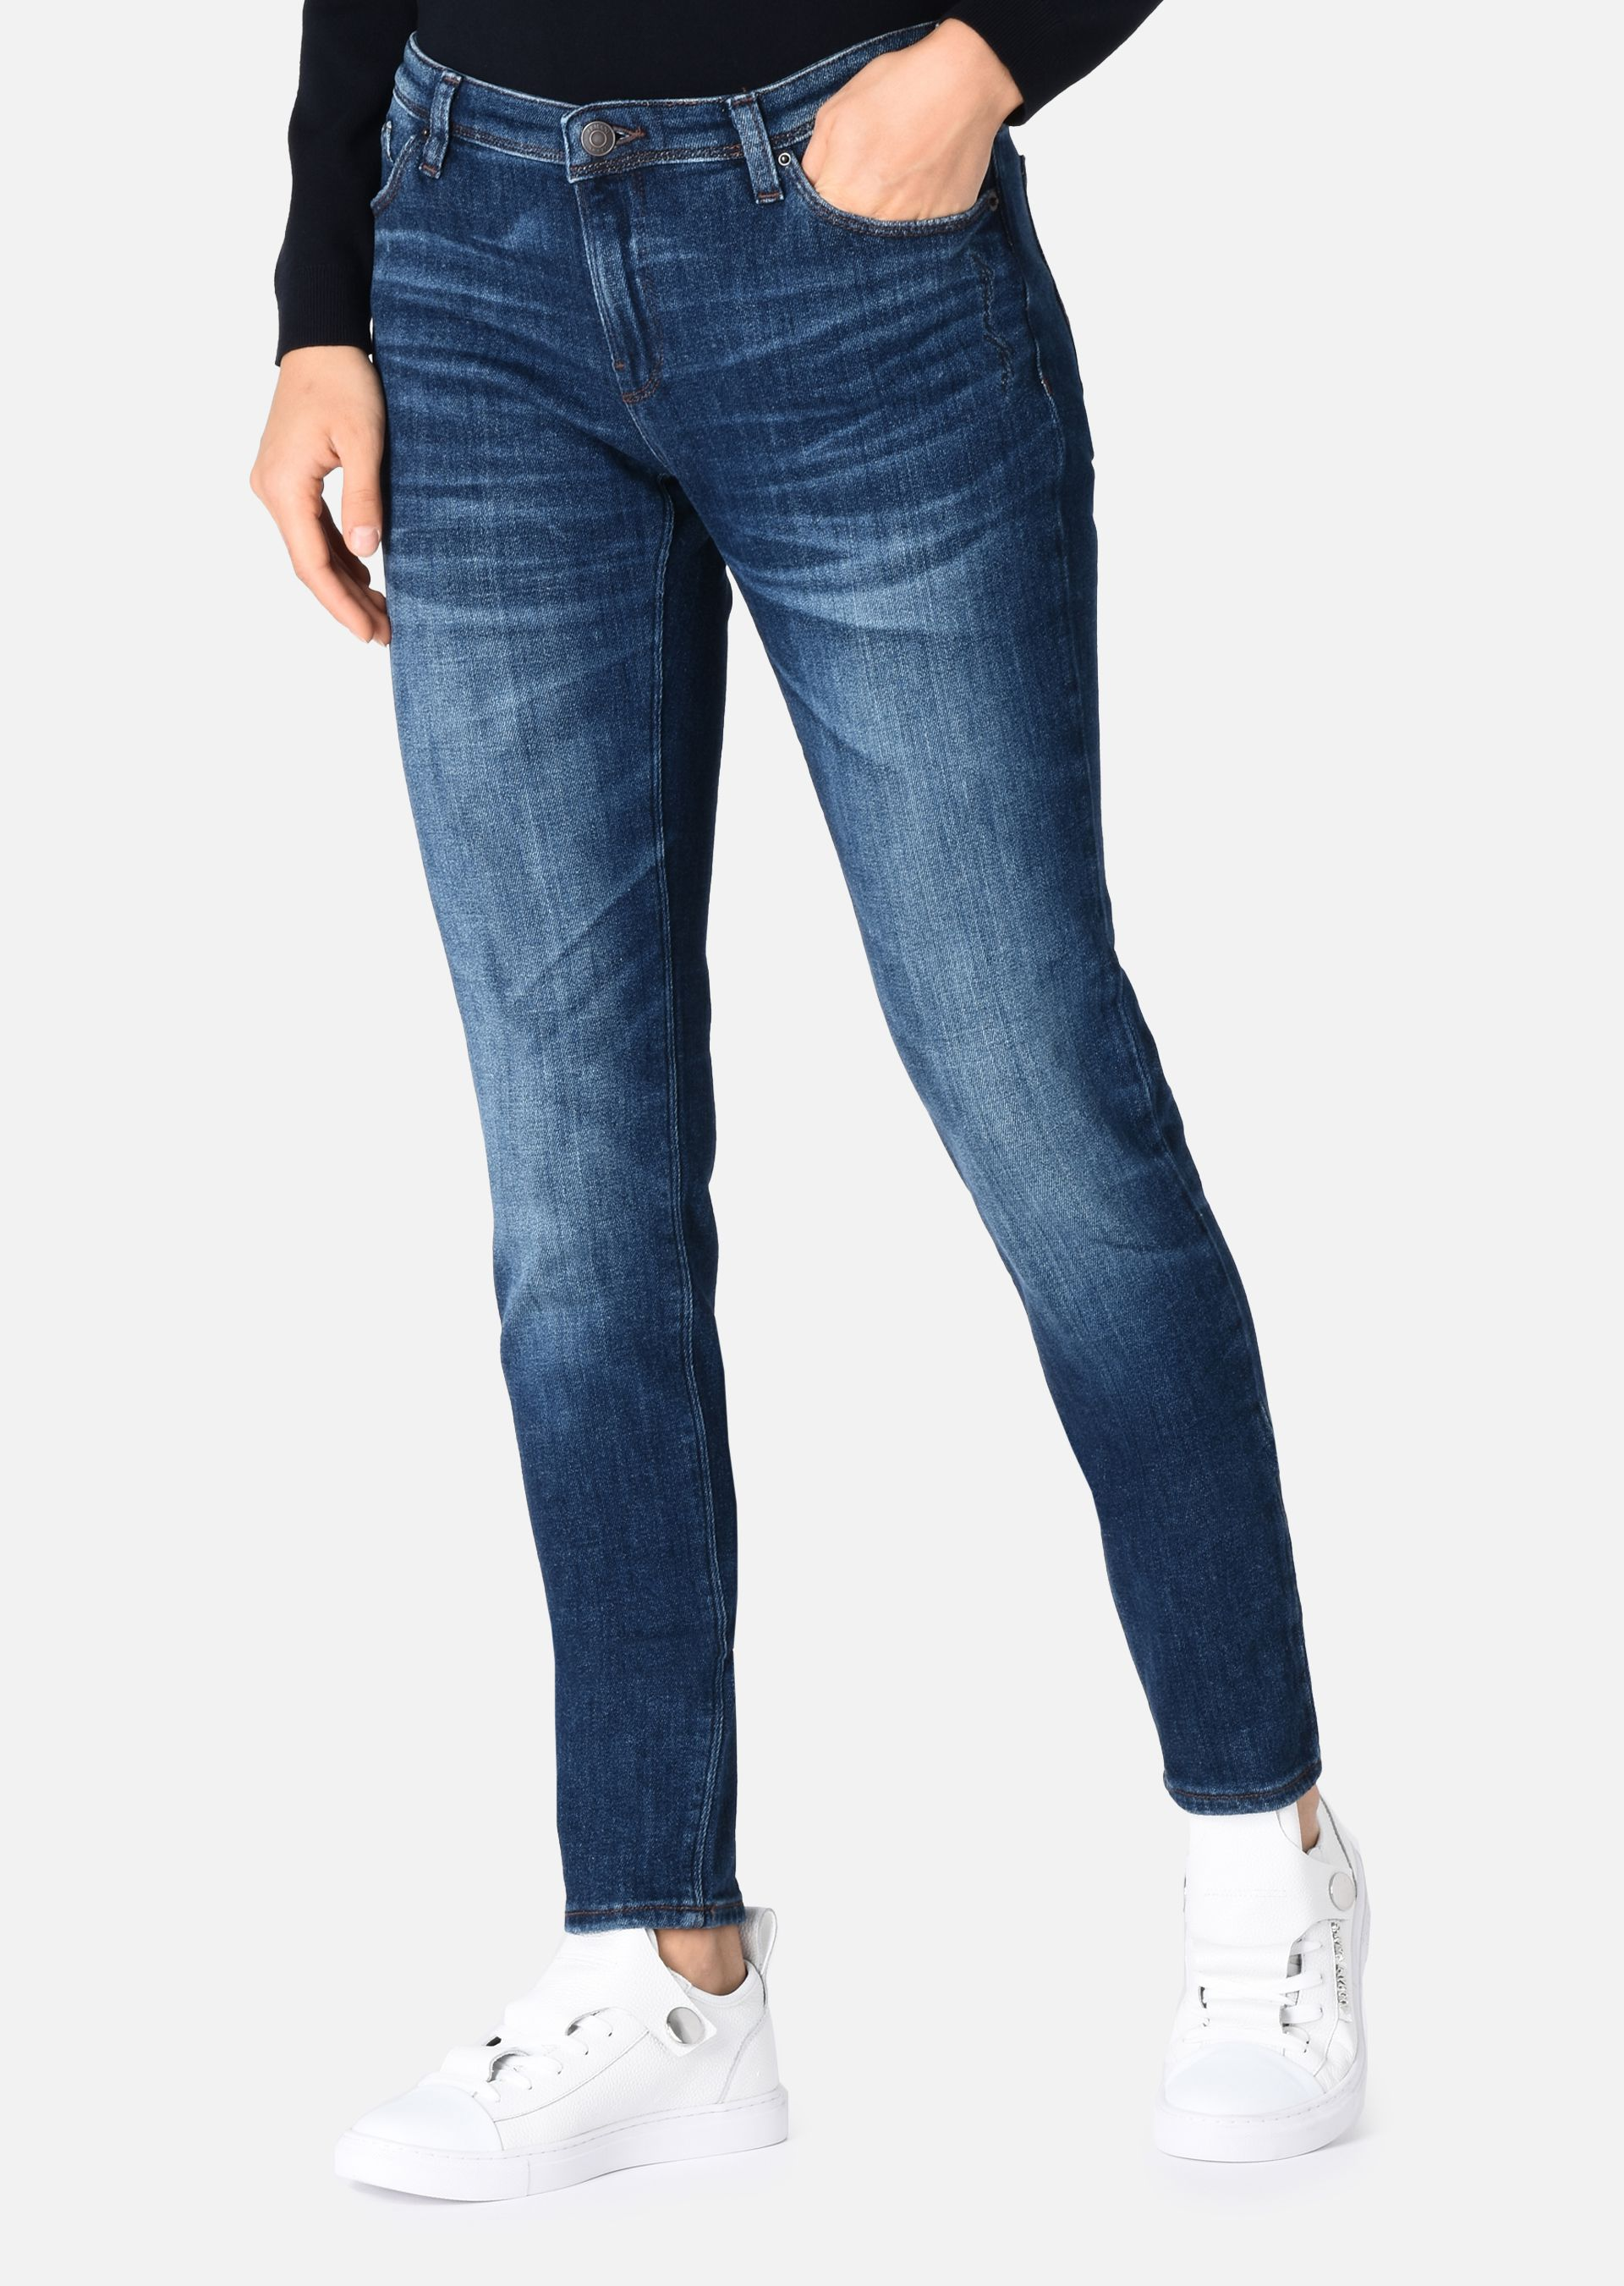 Skinny Ripped Jeans Womens